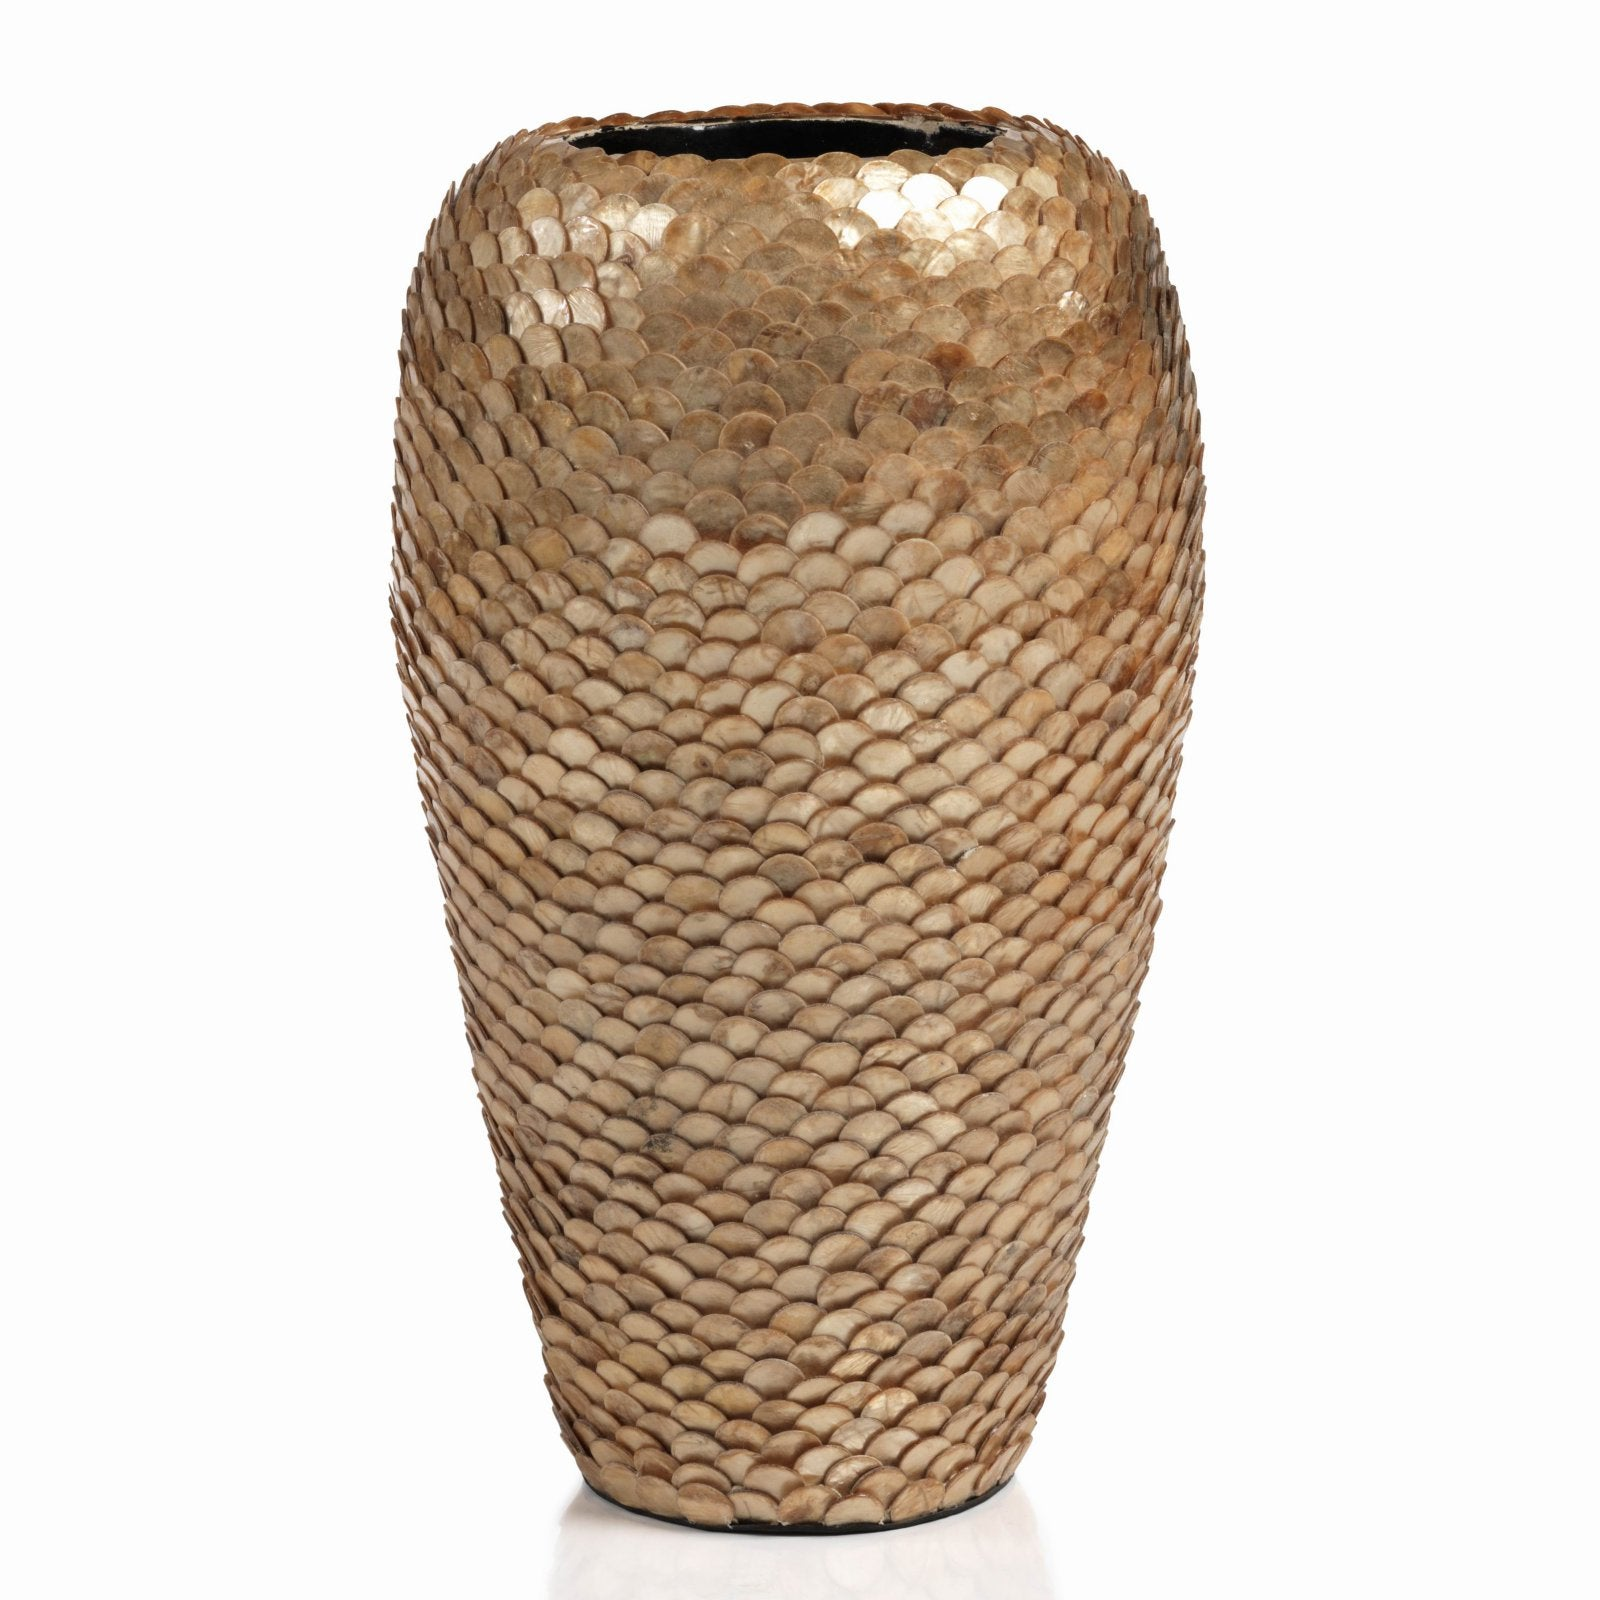 Zodax Seychelles Capiz Covered Vase